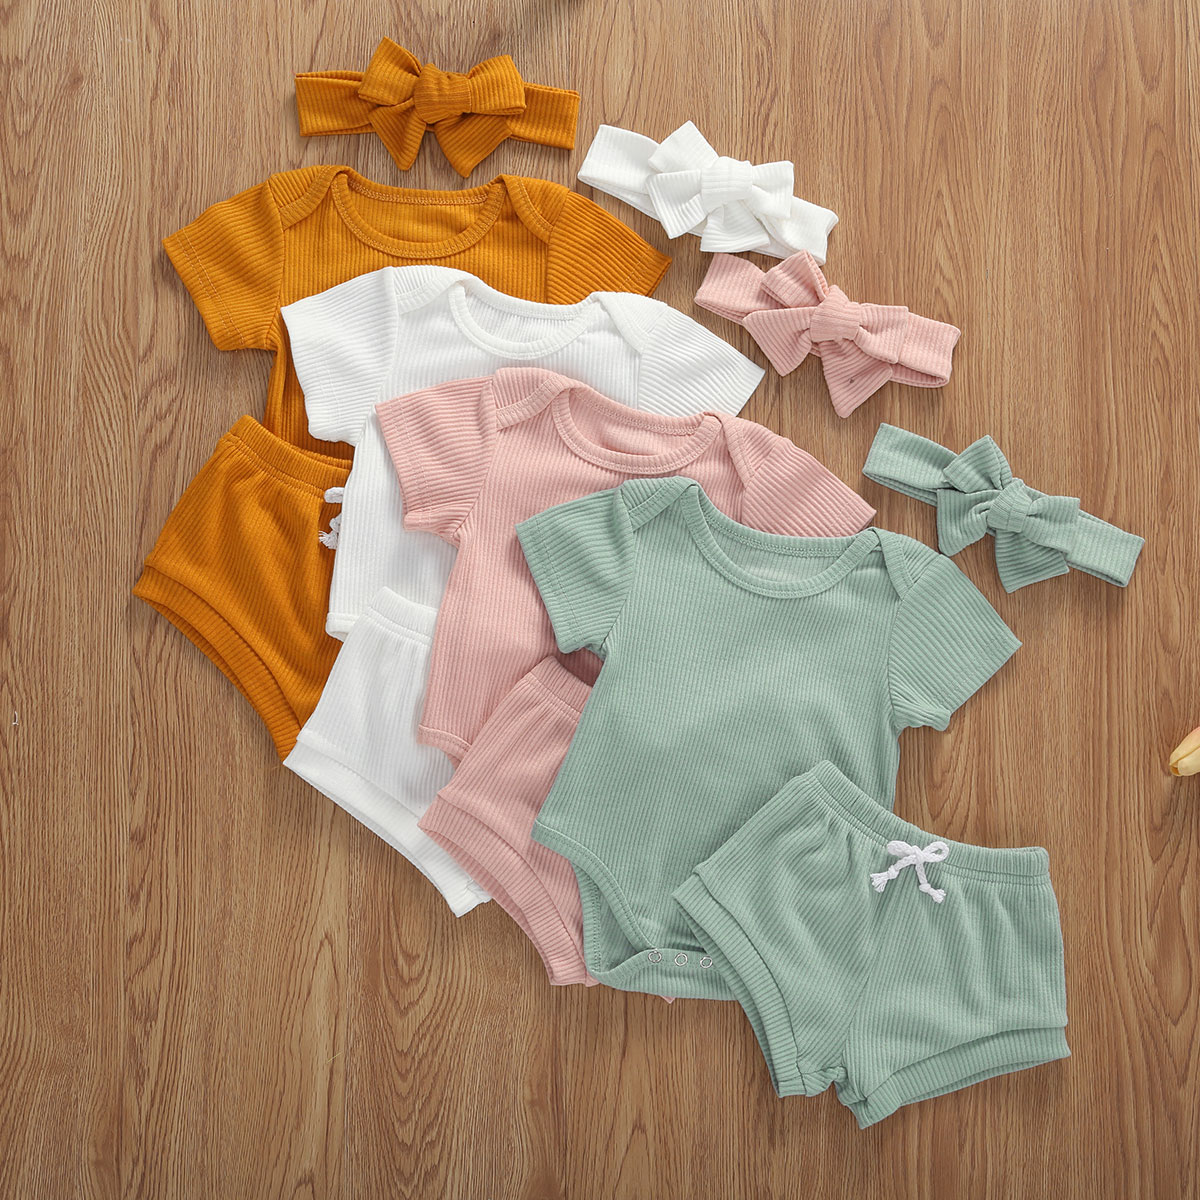 3pcs Newest Summer Toddler Infant Baby Girl Cotton Casual Outfits Set Solid Striped Bodysuit+Shorts+Headband Little Baby Clothes